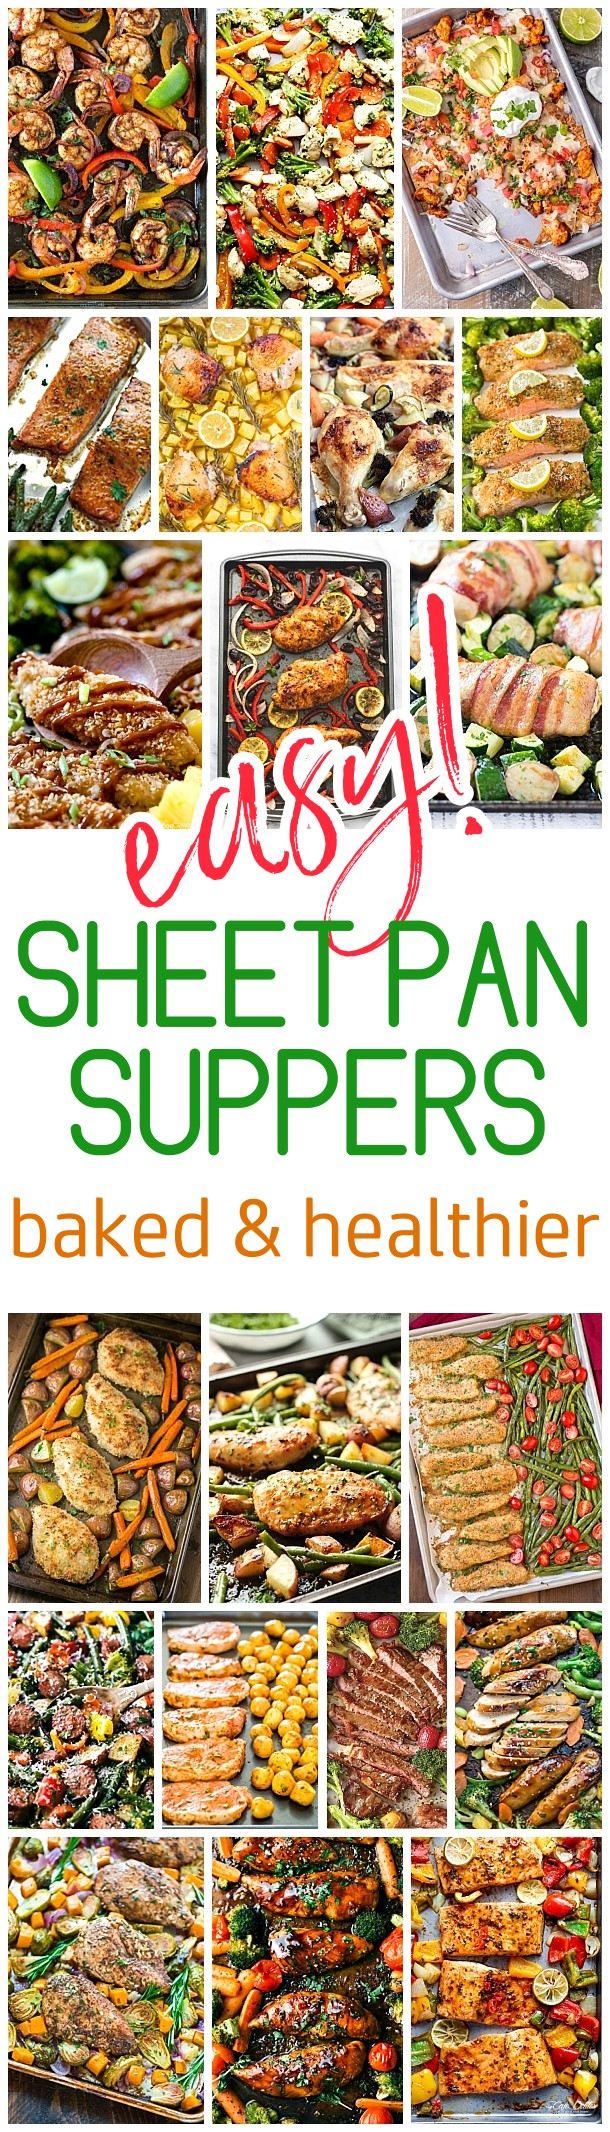 Easy One Sheet Pan Healthier Baked Family Suppers Recipes via Dreaming in DIY - Cleanup and Meal Prep is a BREEZE for quick lunch and simple dinner options. Using less oils and grease, these baked options will become your family favorites! #sheetpansuppers #sheetpanrecipes #sheetpandinners #onepanmeals #healthyrecipes #mealprep #easydinners #easylunches #simplefamilymeals #simplefamilyrecipes #simplerecipes